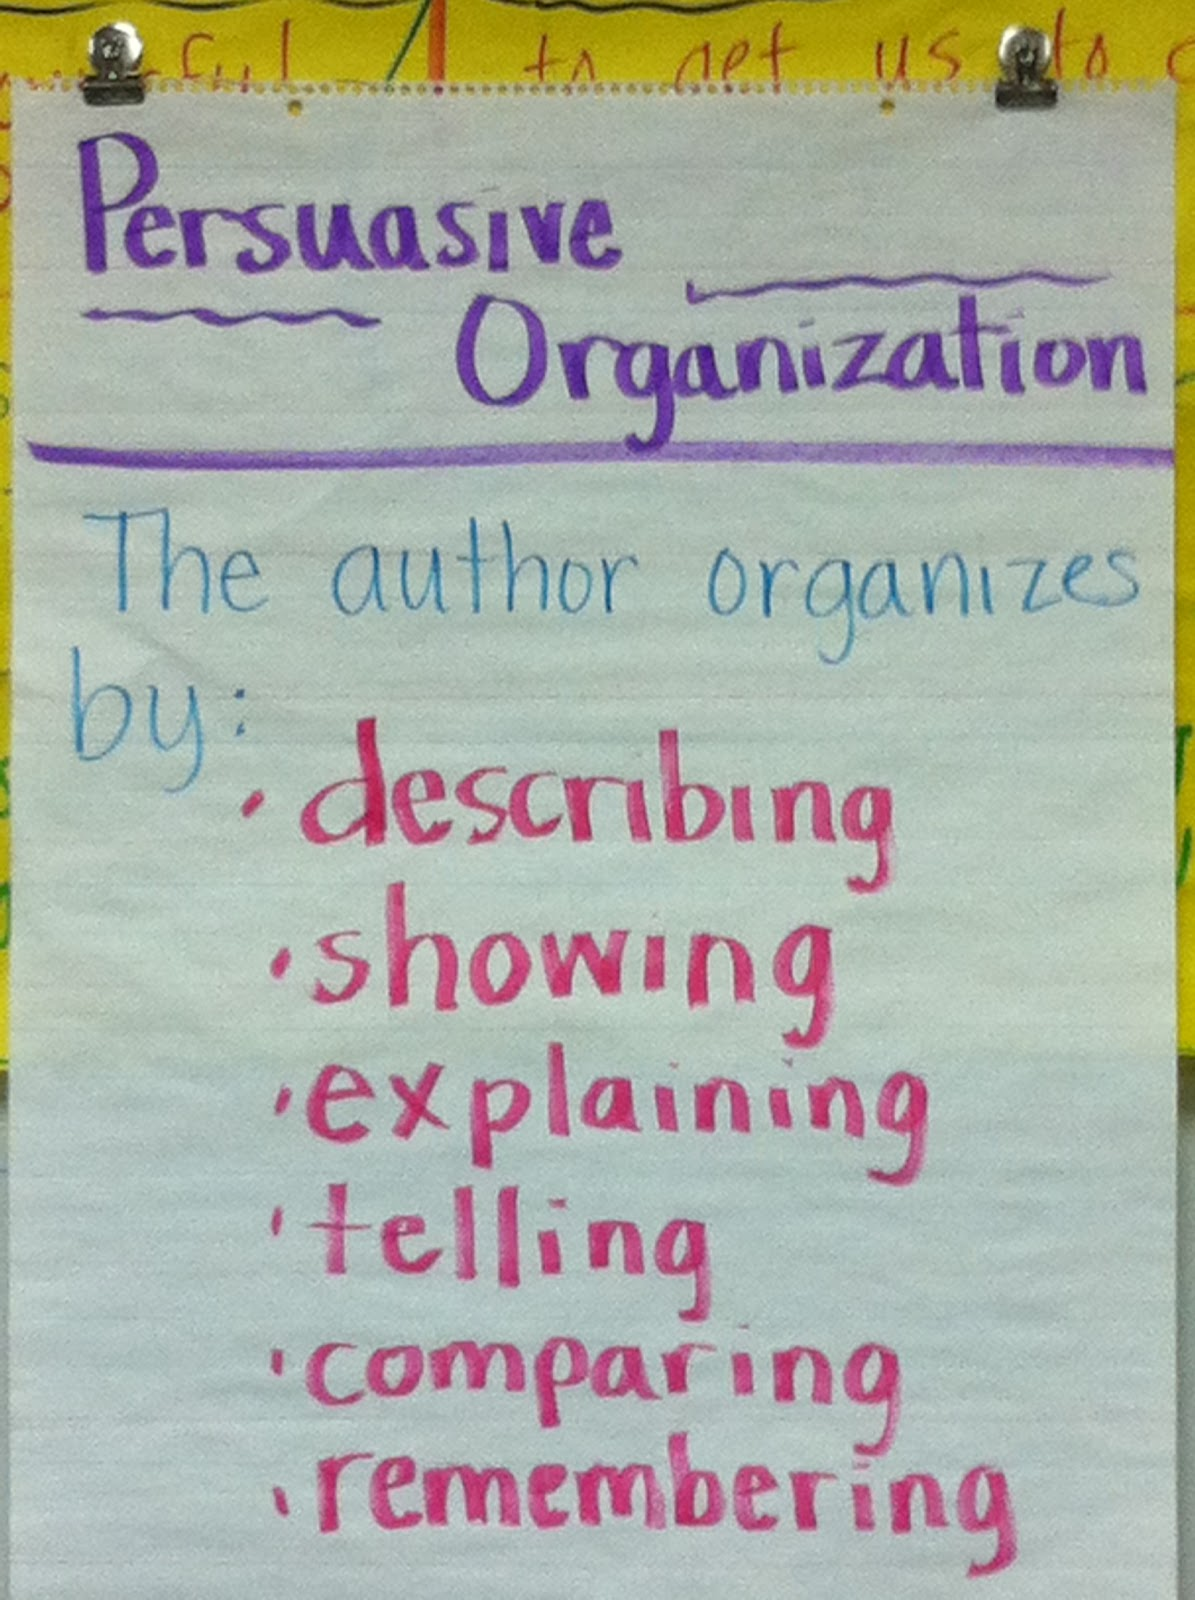 persuasive essay organization dt coursework help below is a basic outline for an argumentative or persuasive essay